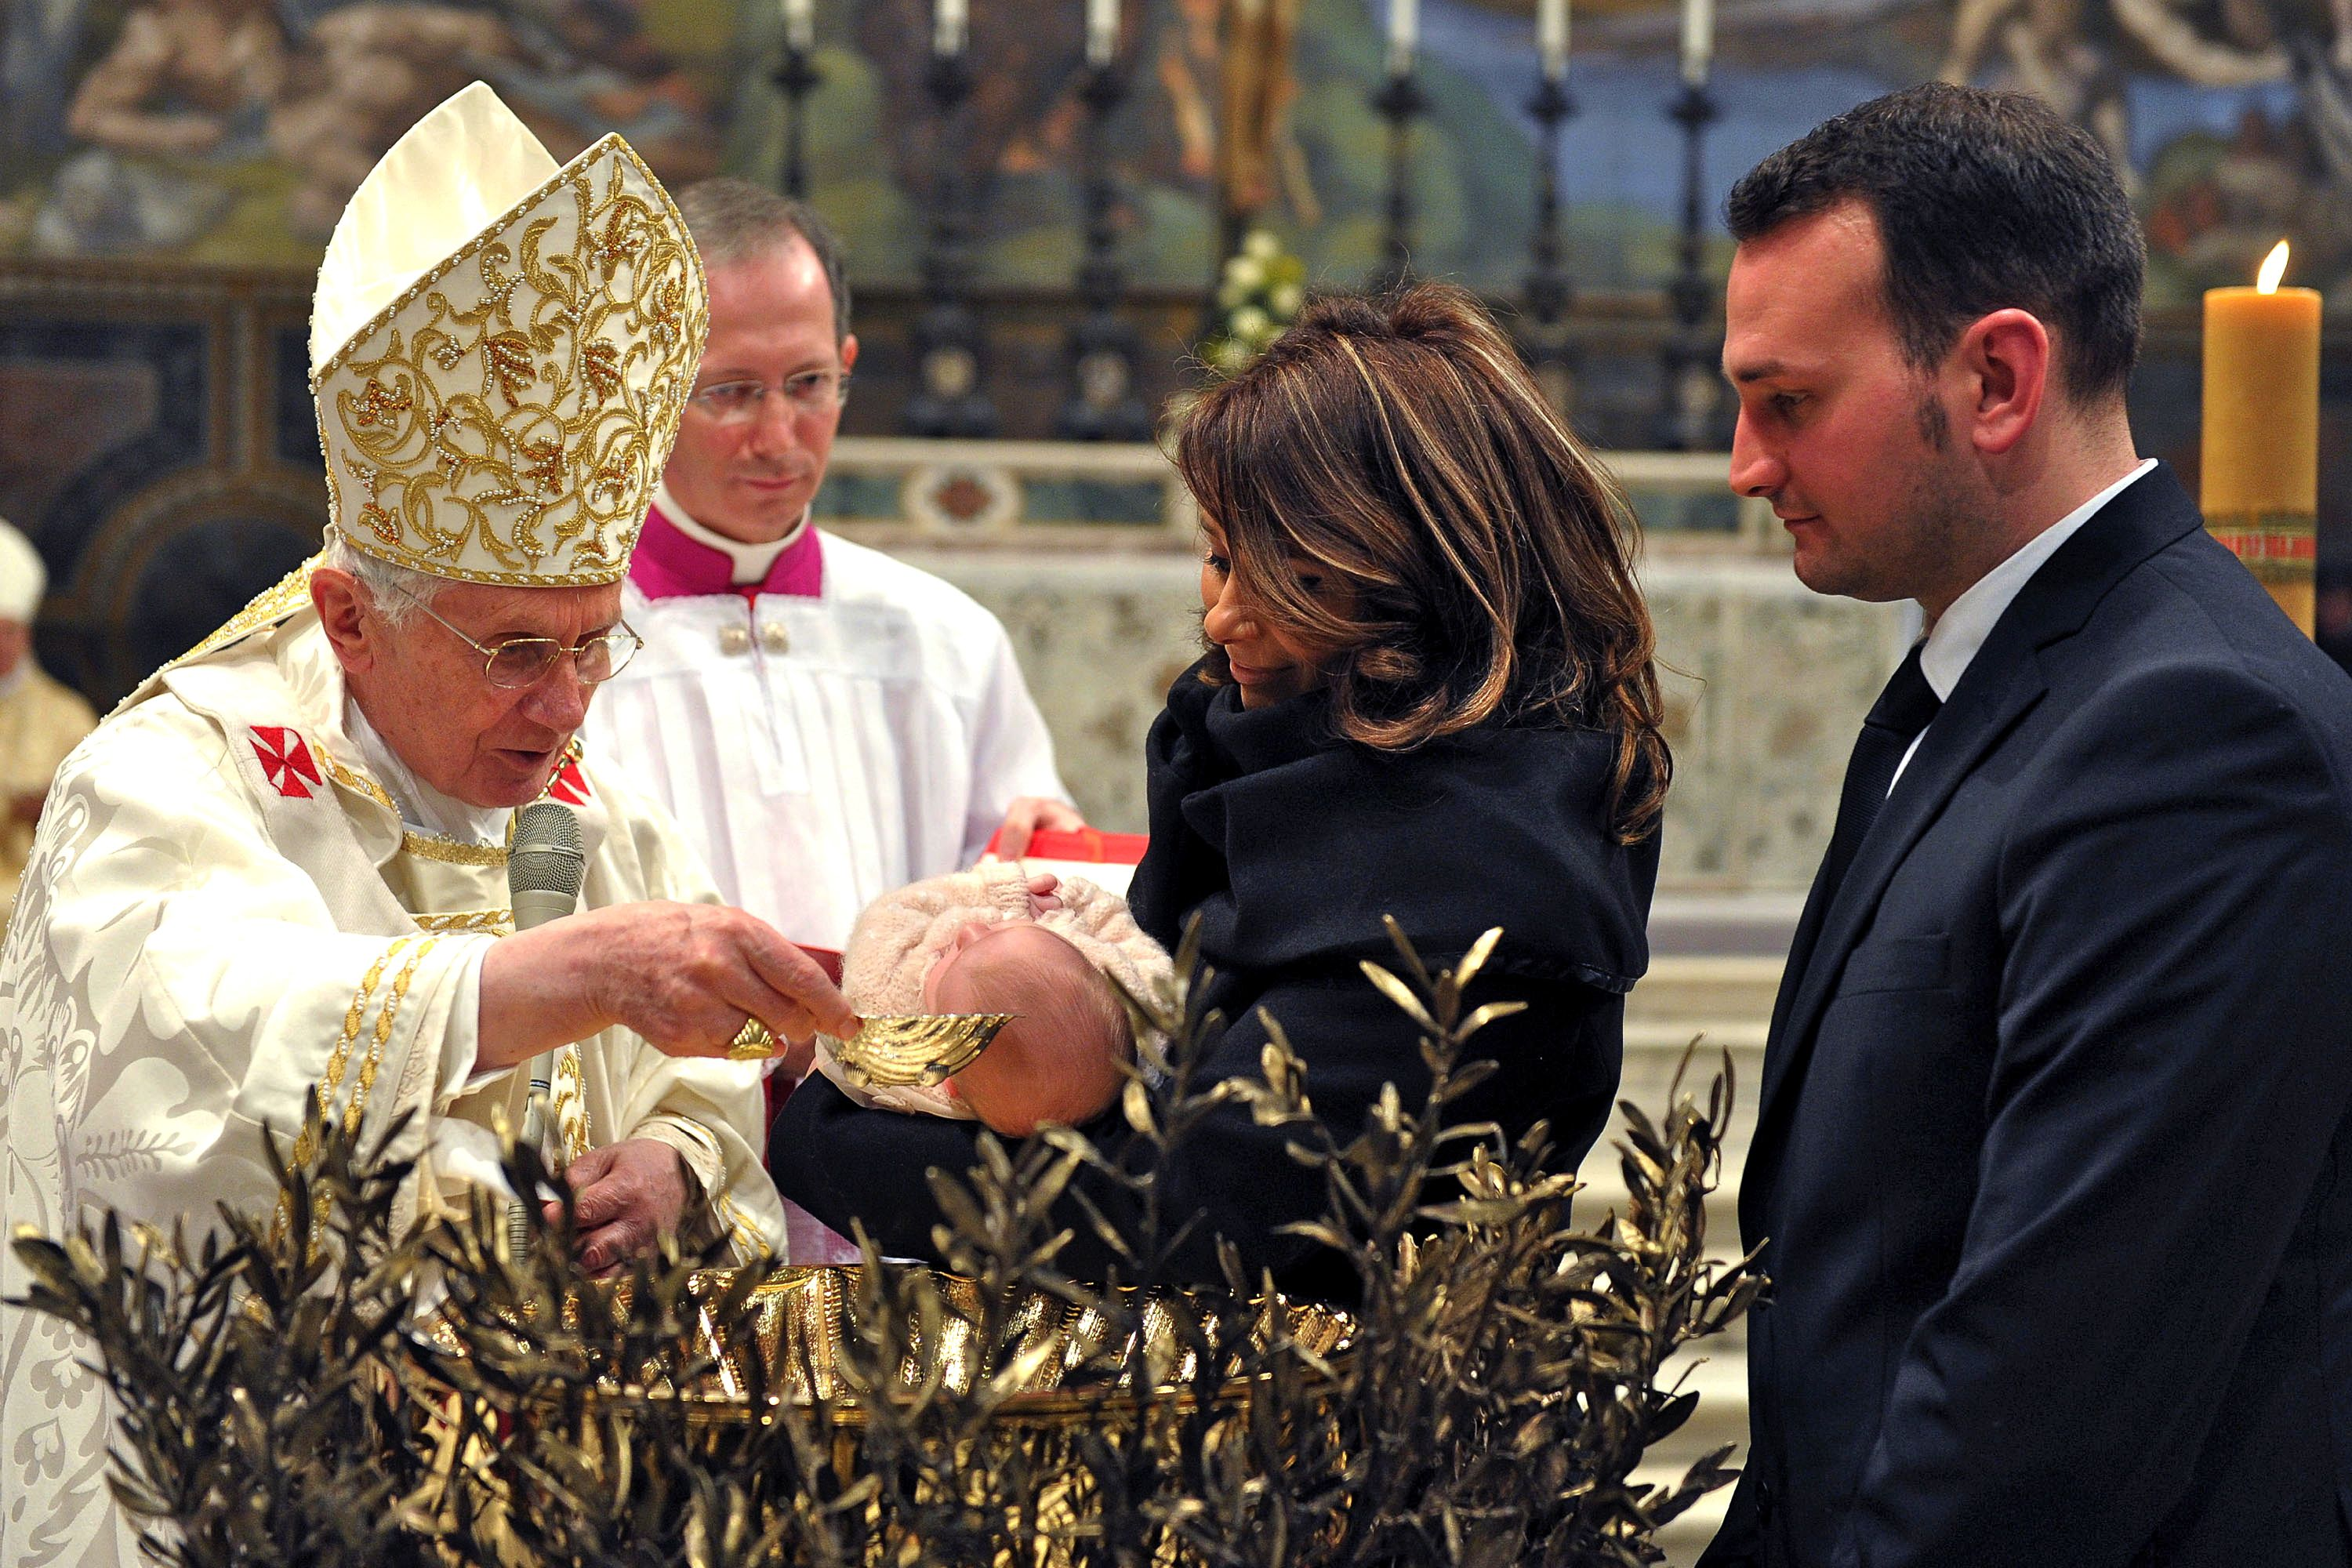 The Sacrament Of Baptism In The Catholic Church